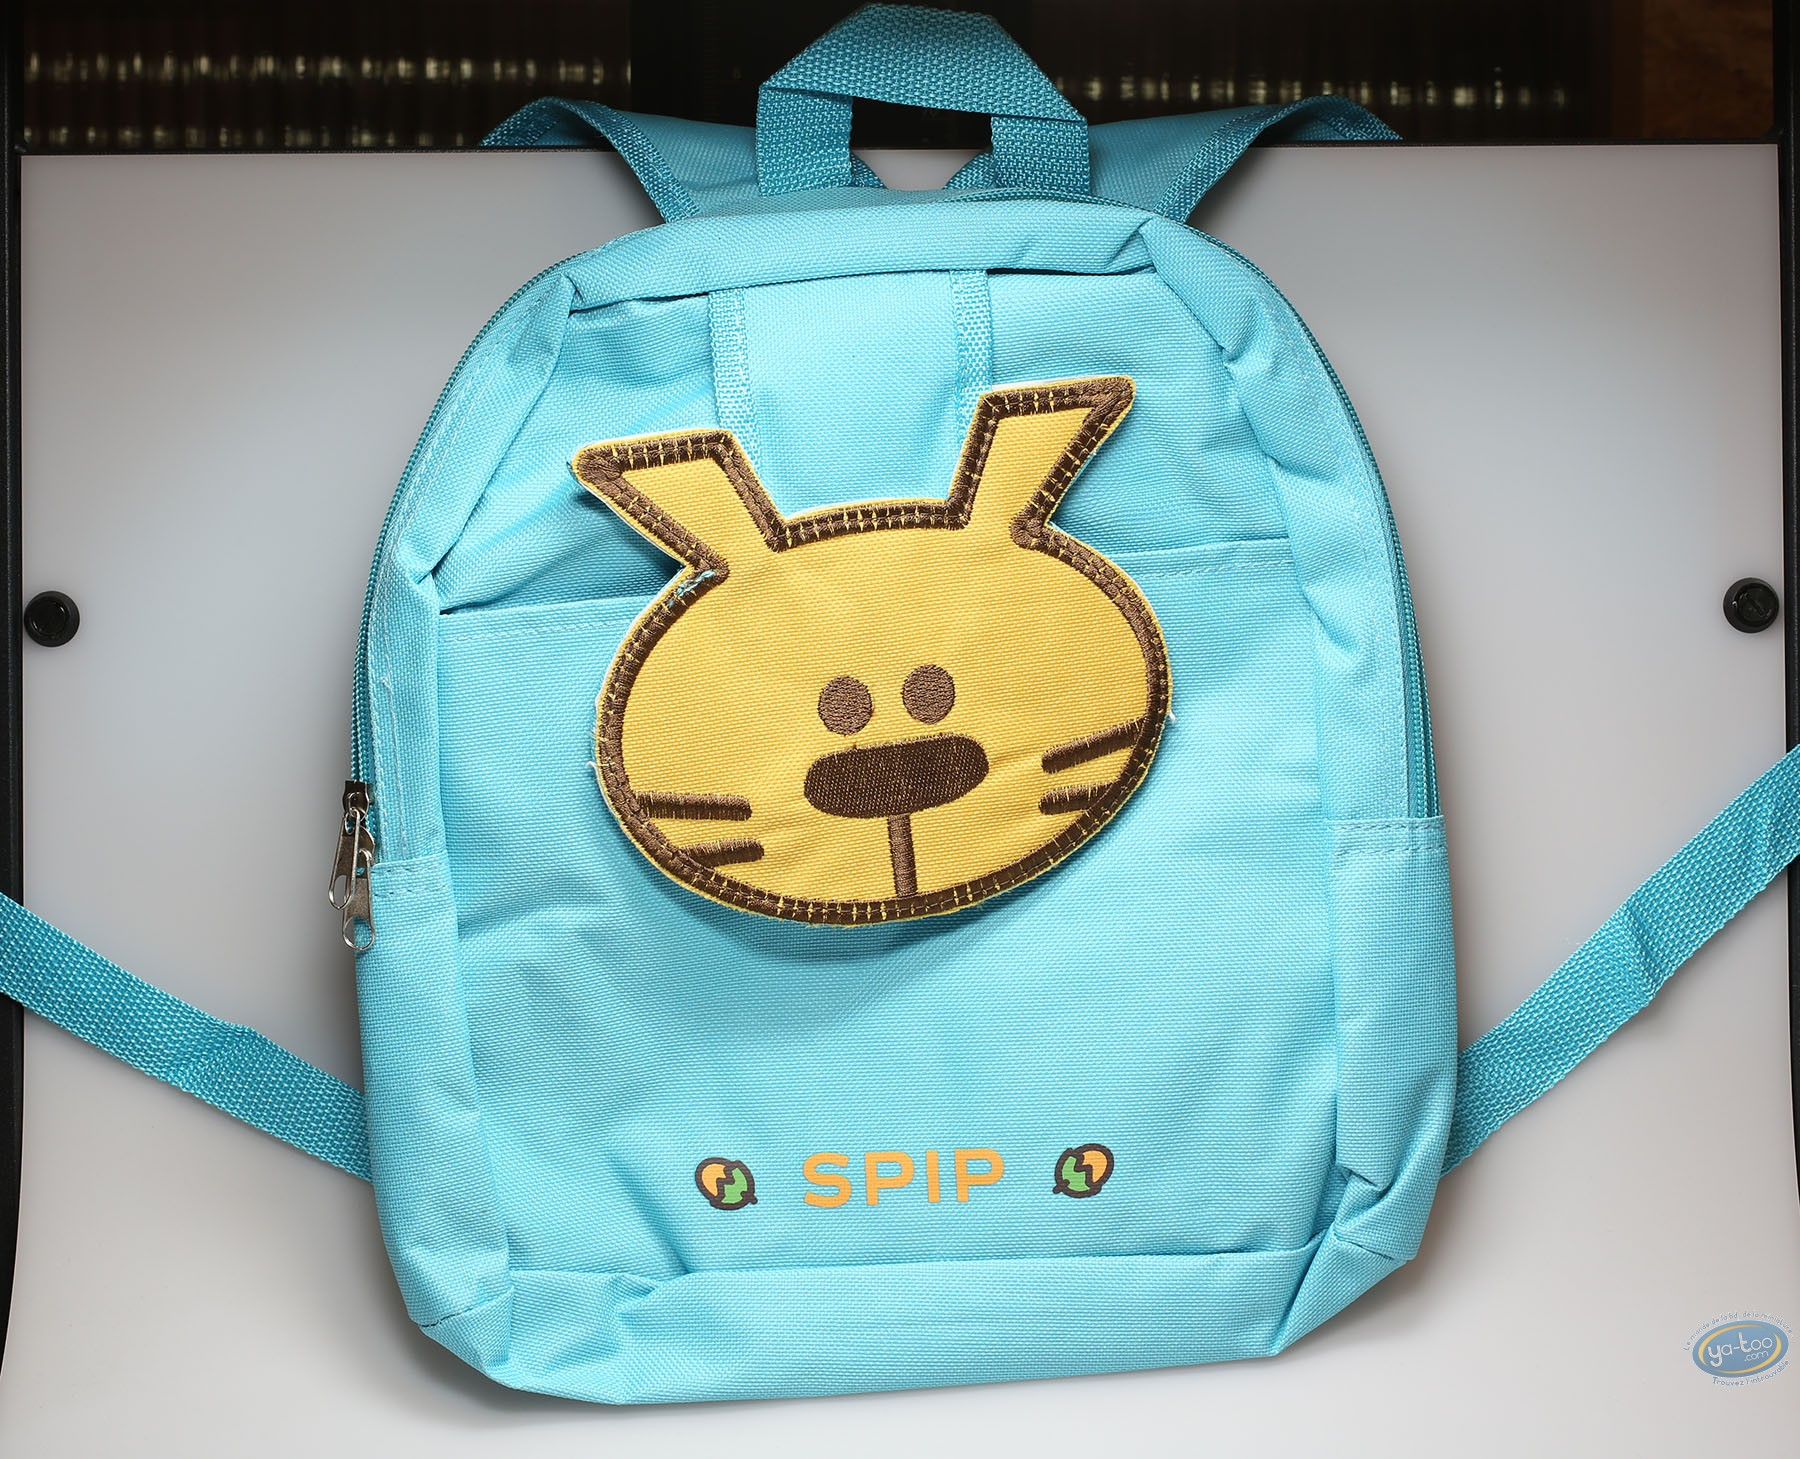 Toy, Spip : Toy for children, Spip : Big Backpack